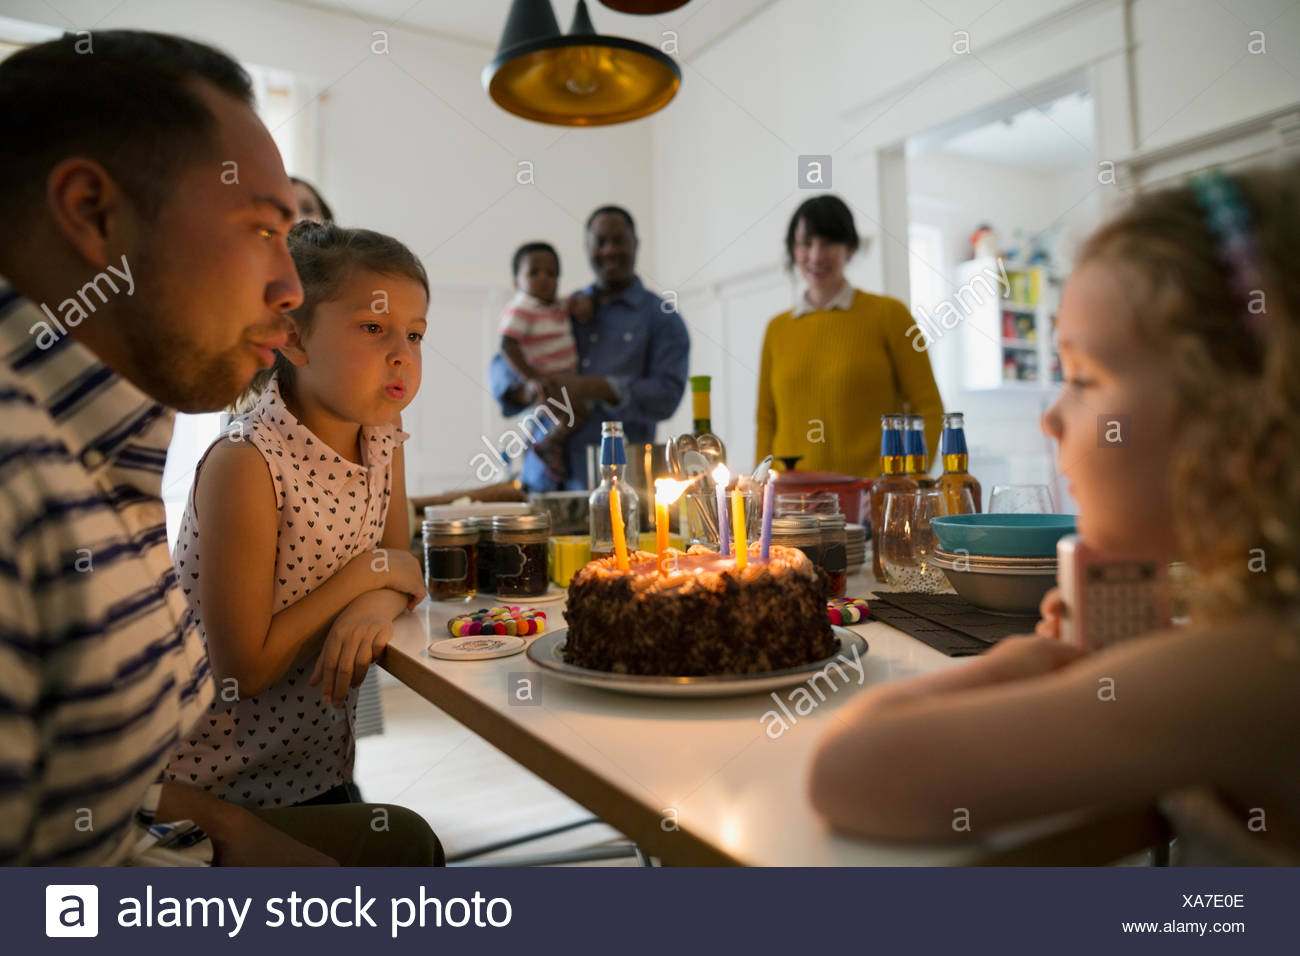 Father and daughters blowing out birthday cake candles at party - Stock Image